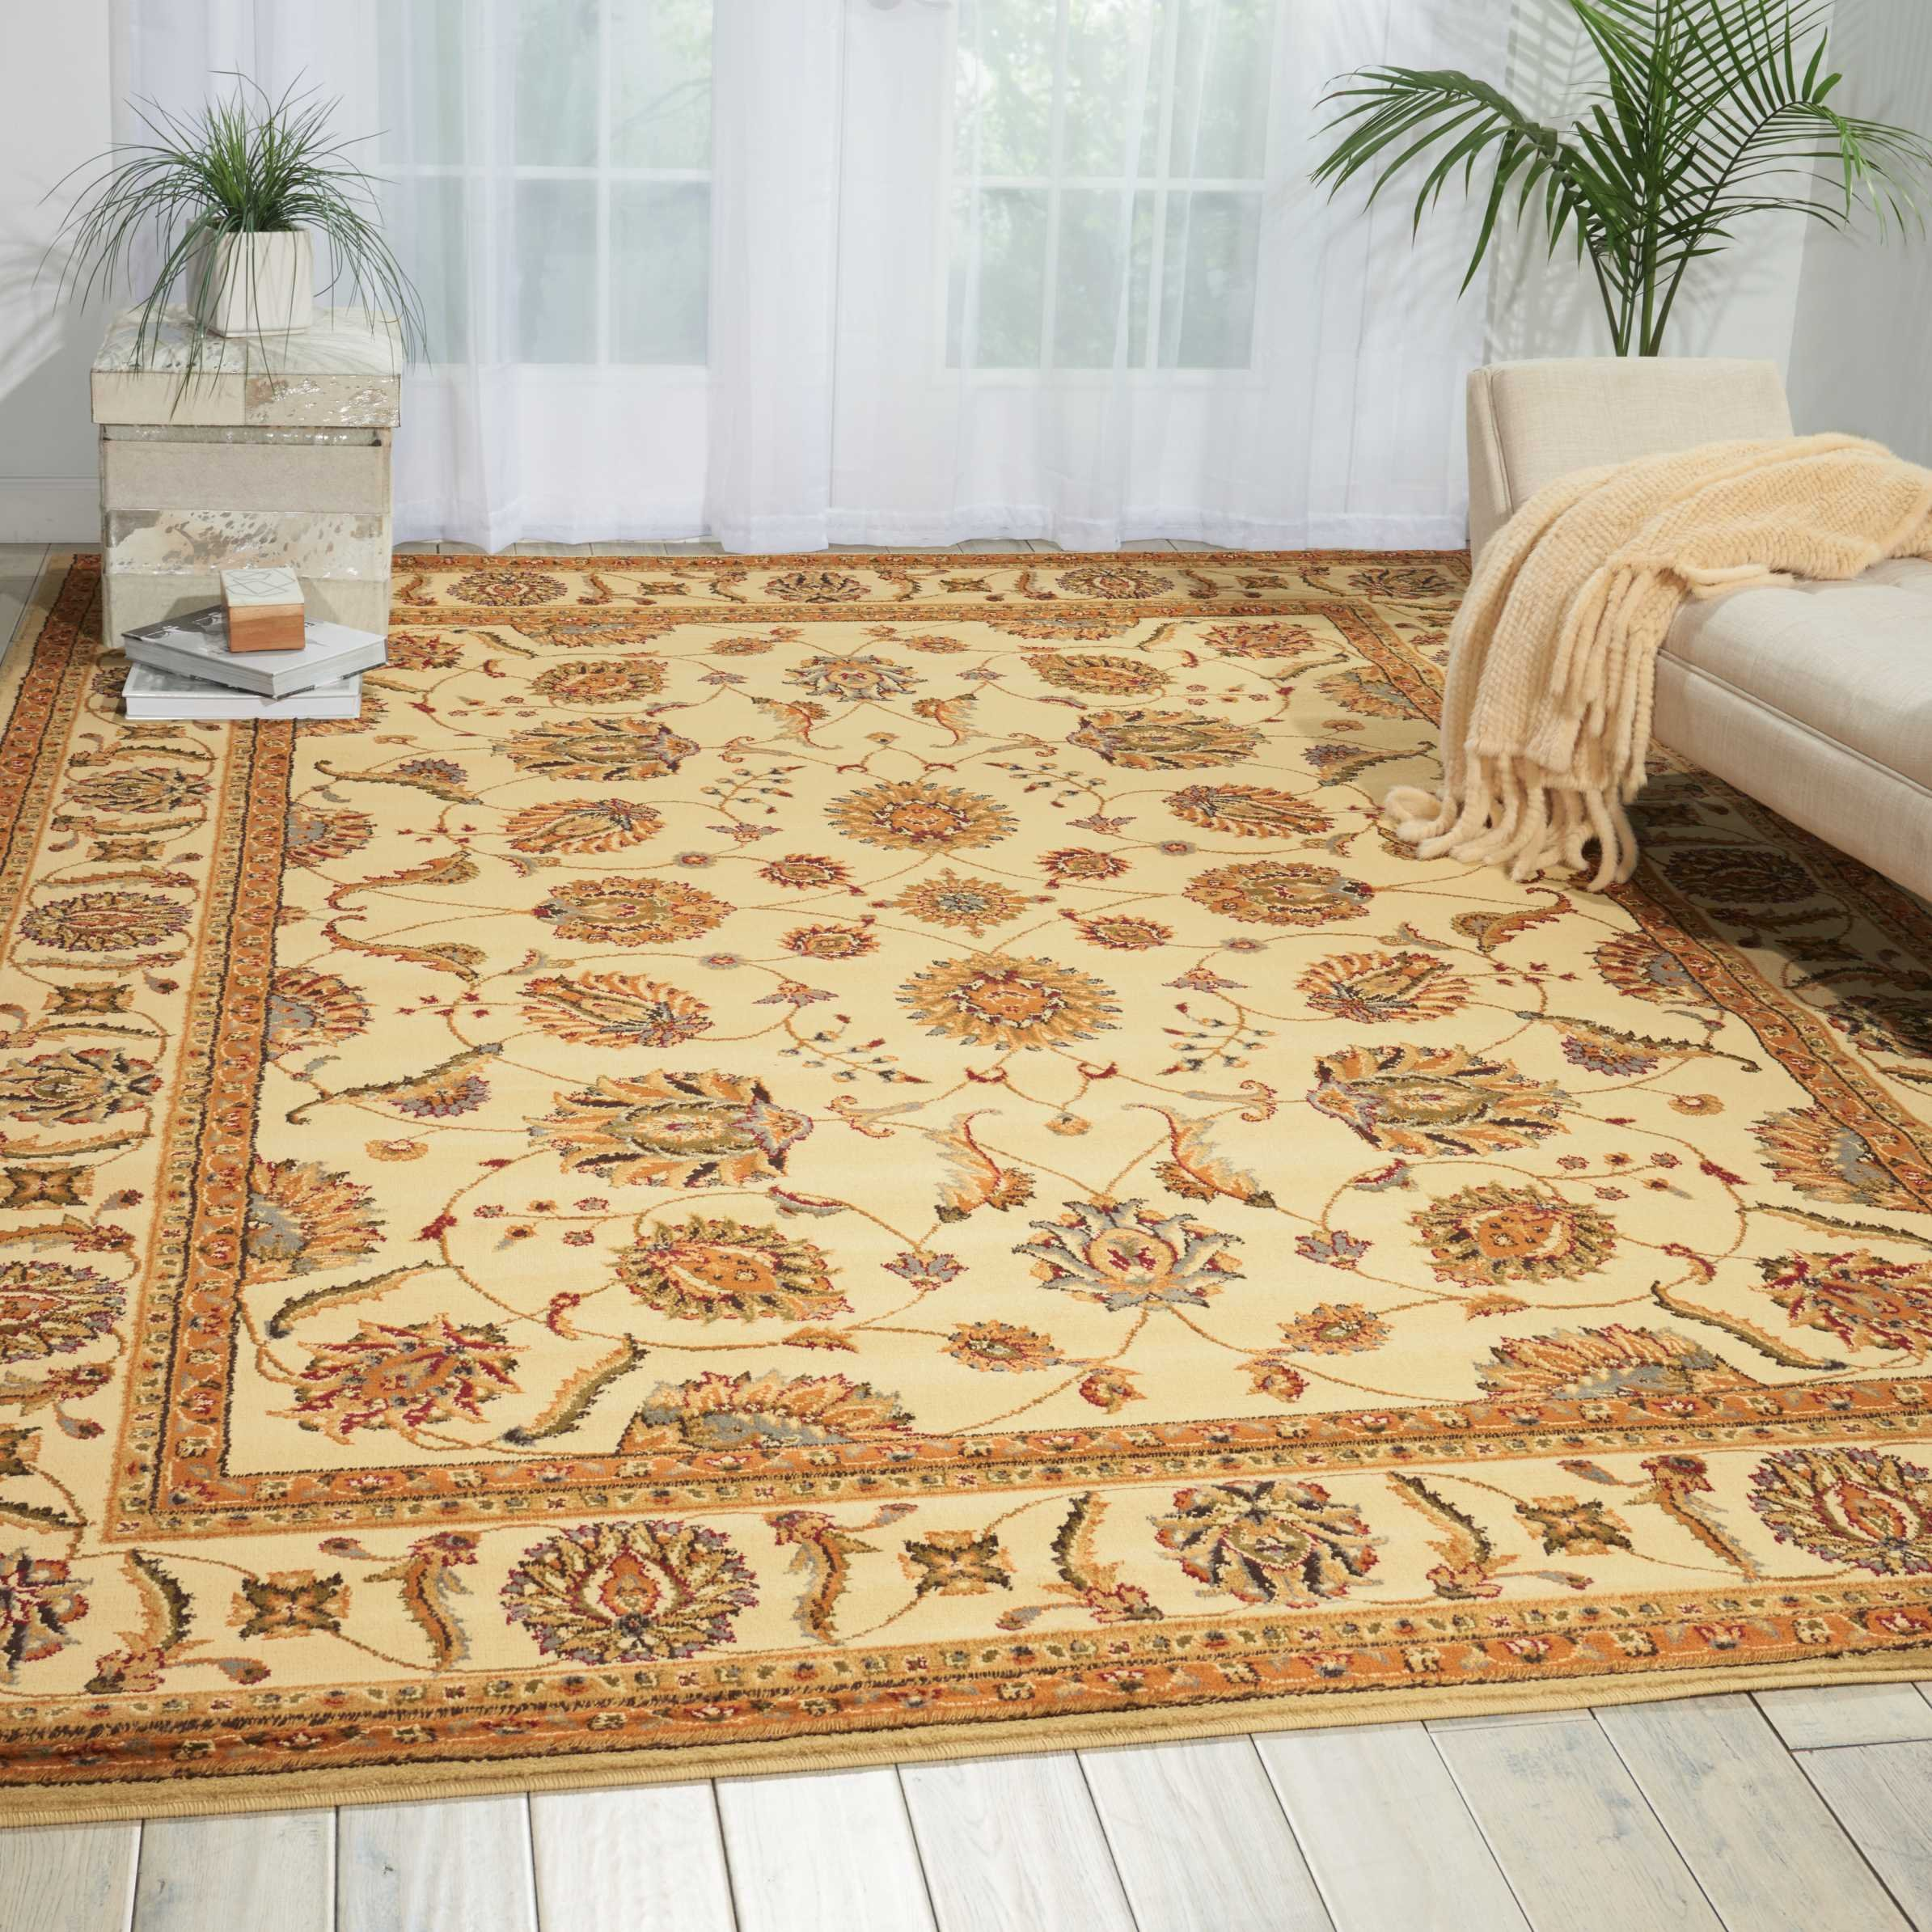 Nourison Paramount (PAR09) Beige Rectangle Area Rug, 7-Feet 10-Inches by 10-Feet 6-Inches (7'10'' x 10'6'')